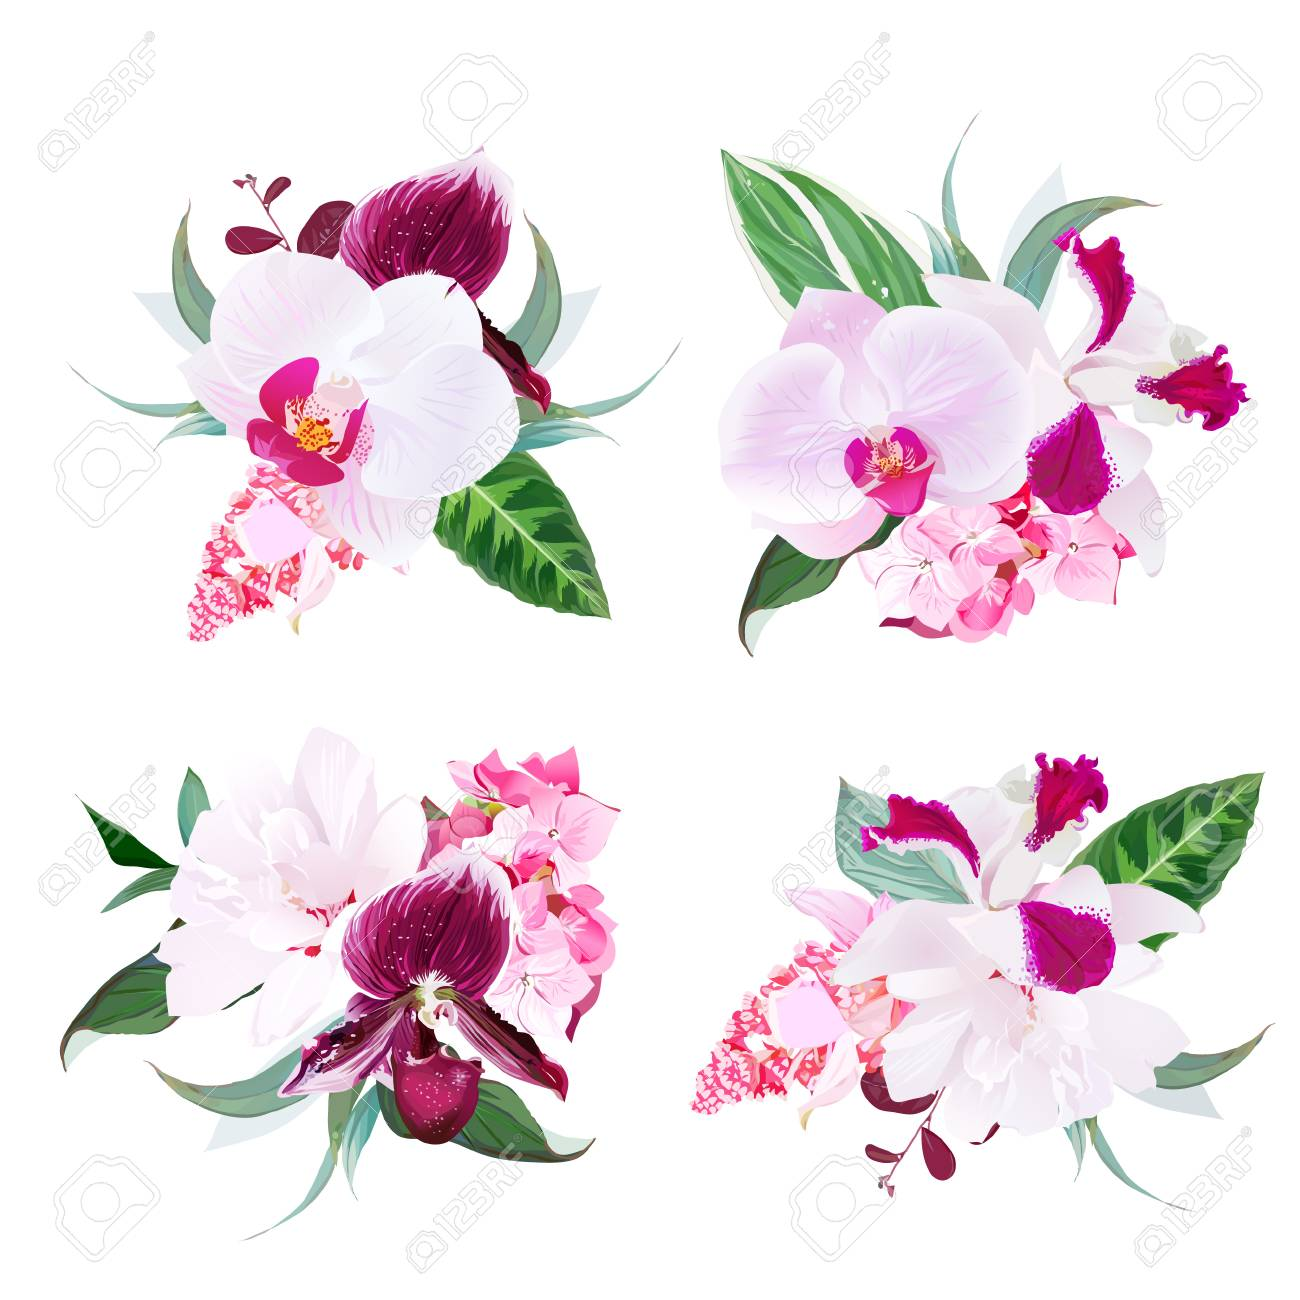 Exotic tropical floral bouquets arranged from singapore orchid exotic tropical floral bouquets arranged from singapore orchid f stock vector 79020454 izmirmasajfo